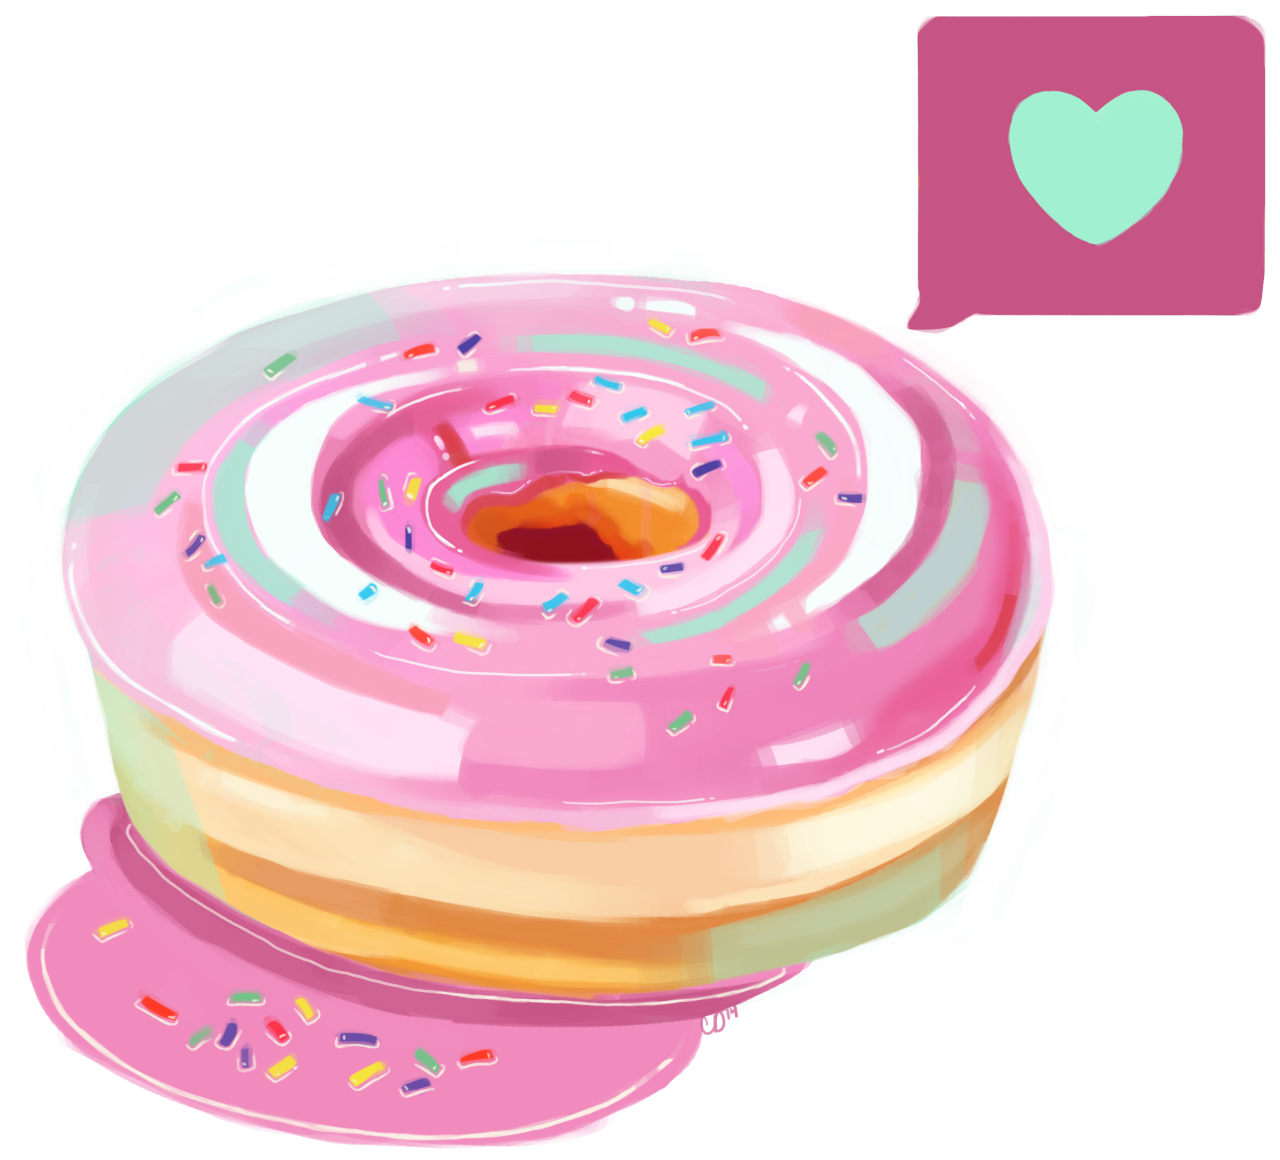 Heart donut clipart graphic transparent stock Here's the .png of the Pink Frosted Heart Donut! Enjoy a see-through ... graphic transparent stock